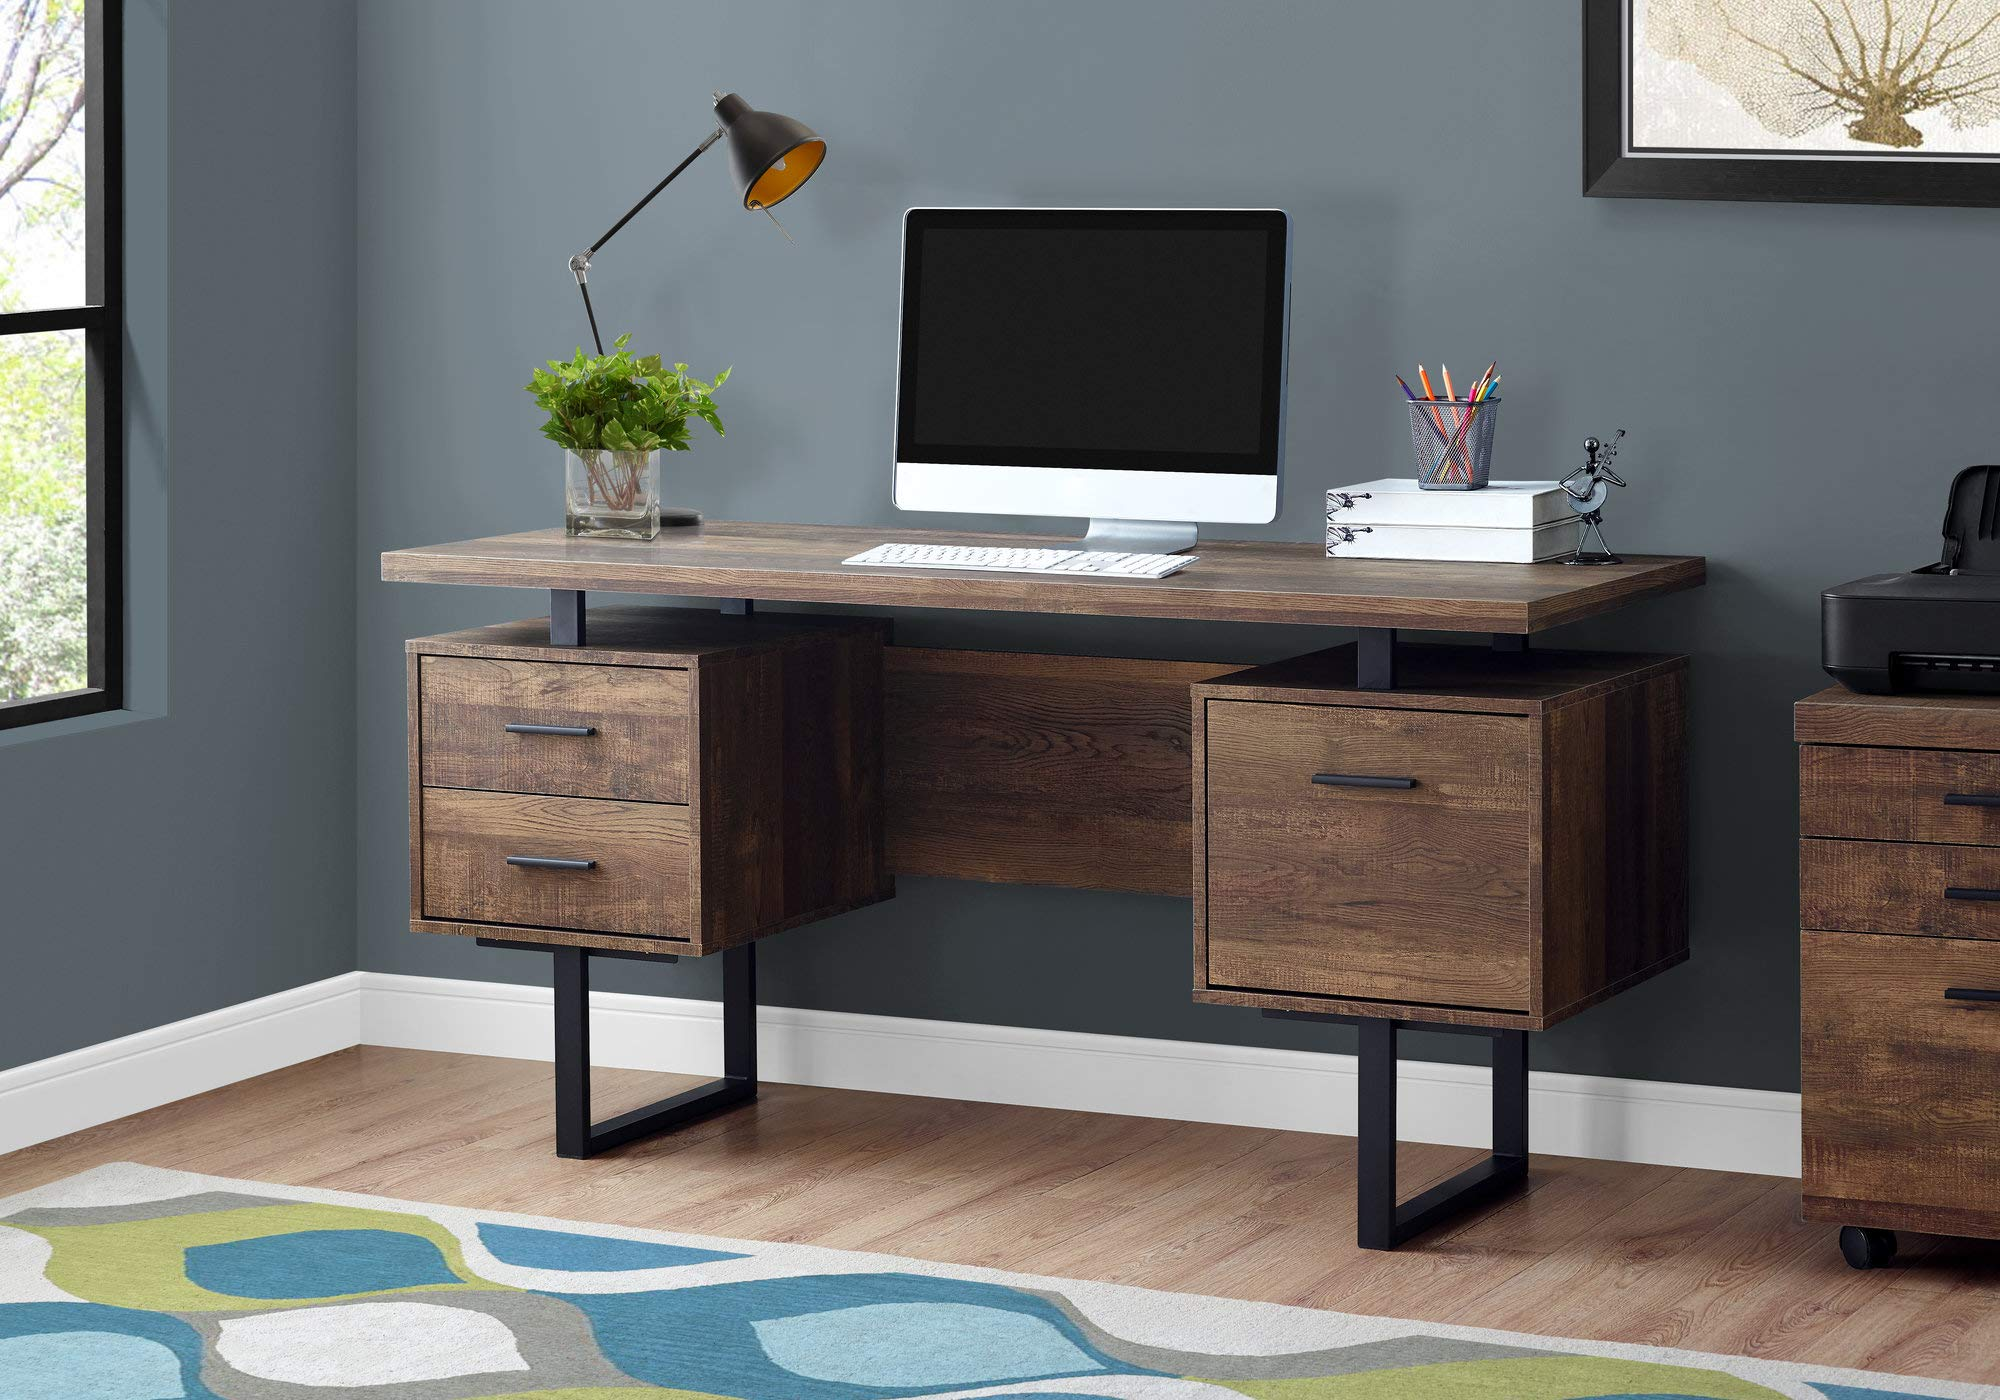 Monarch Specialties Computer Desk with Drawers - Contemporary Style - Home & Office Computer Desk with Metal Legs - 60'' L (Brown Reclaimed Wood Look) by Monarch Specialties